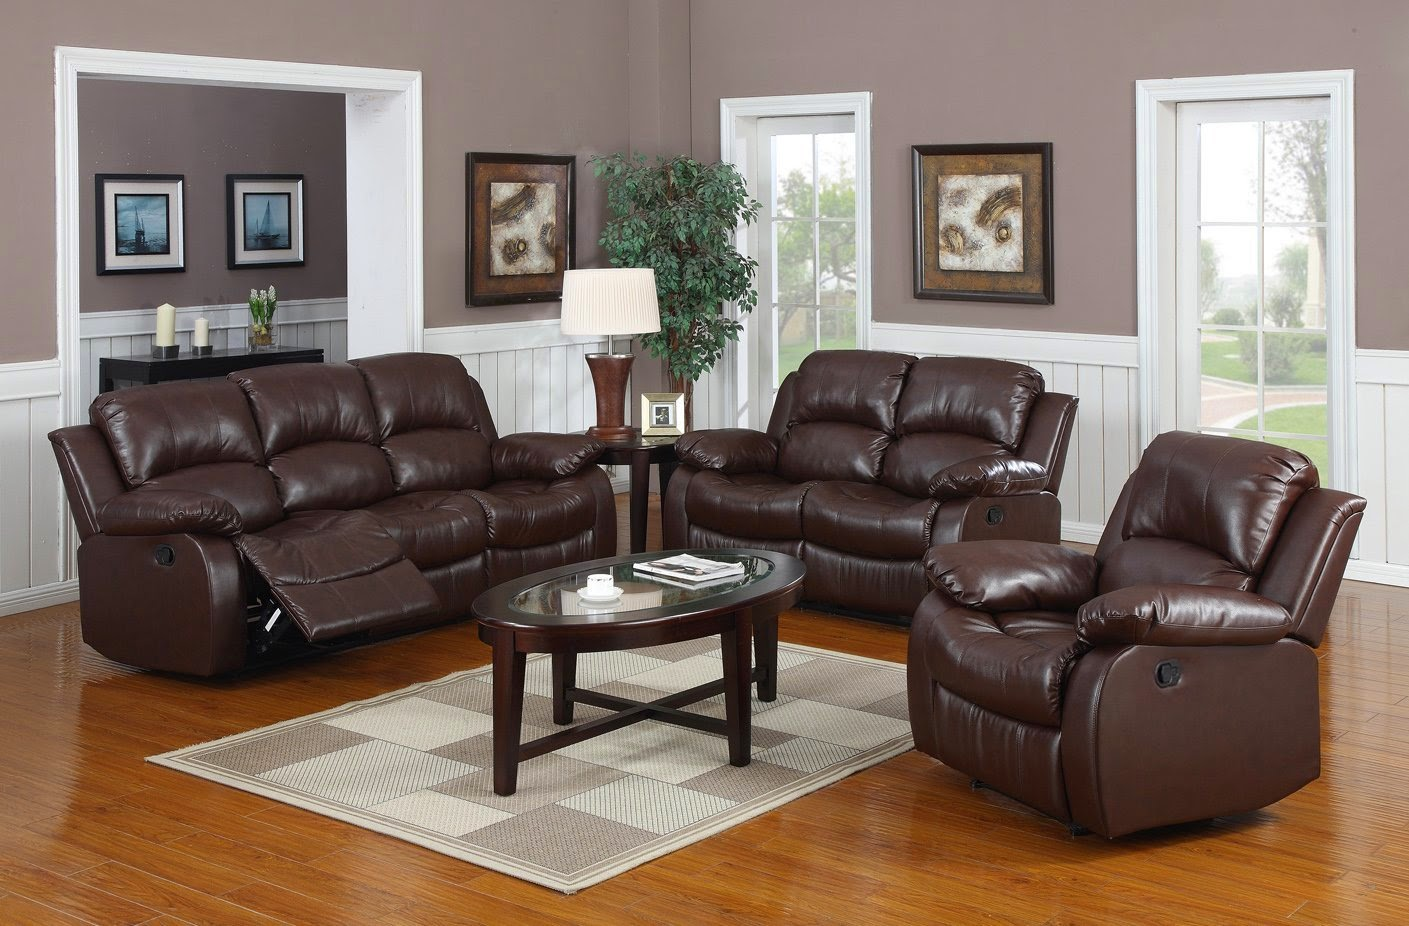 Awesome 40 Living Room Sofas On Sale Decorating Design Of